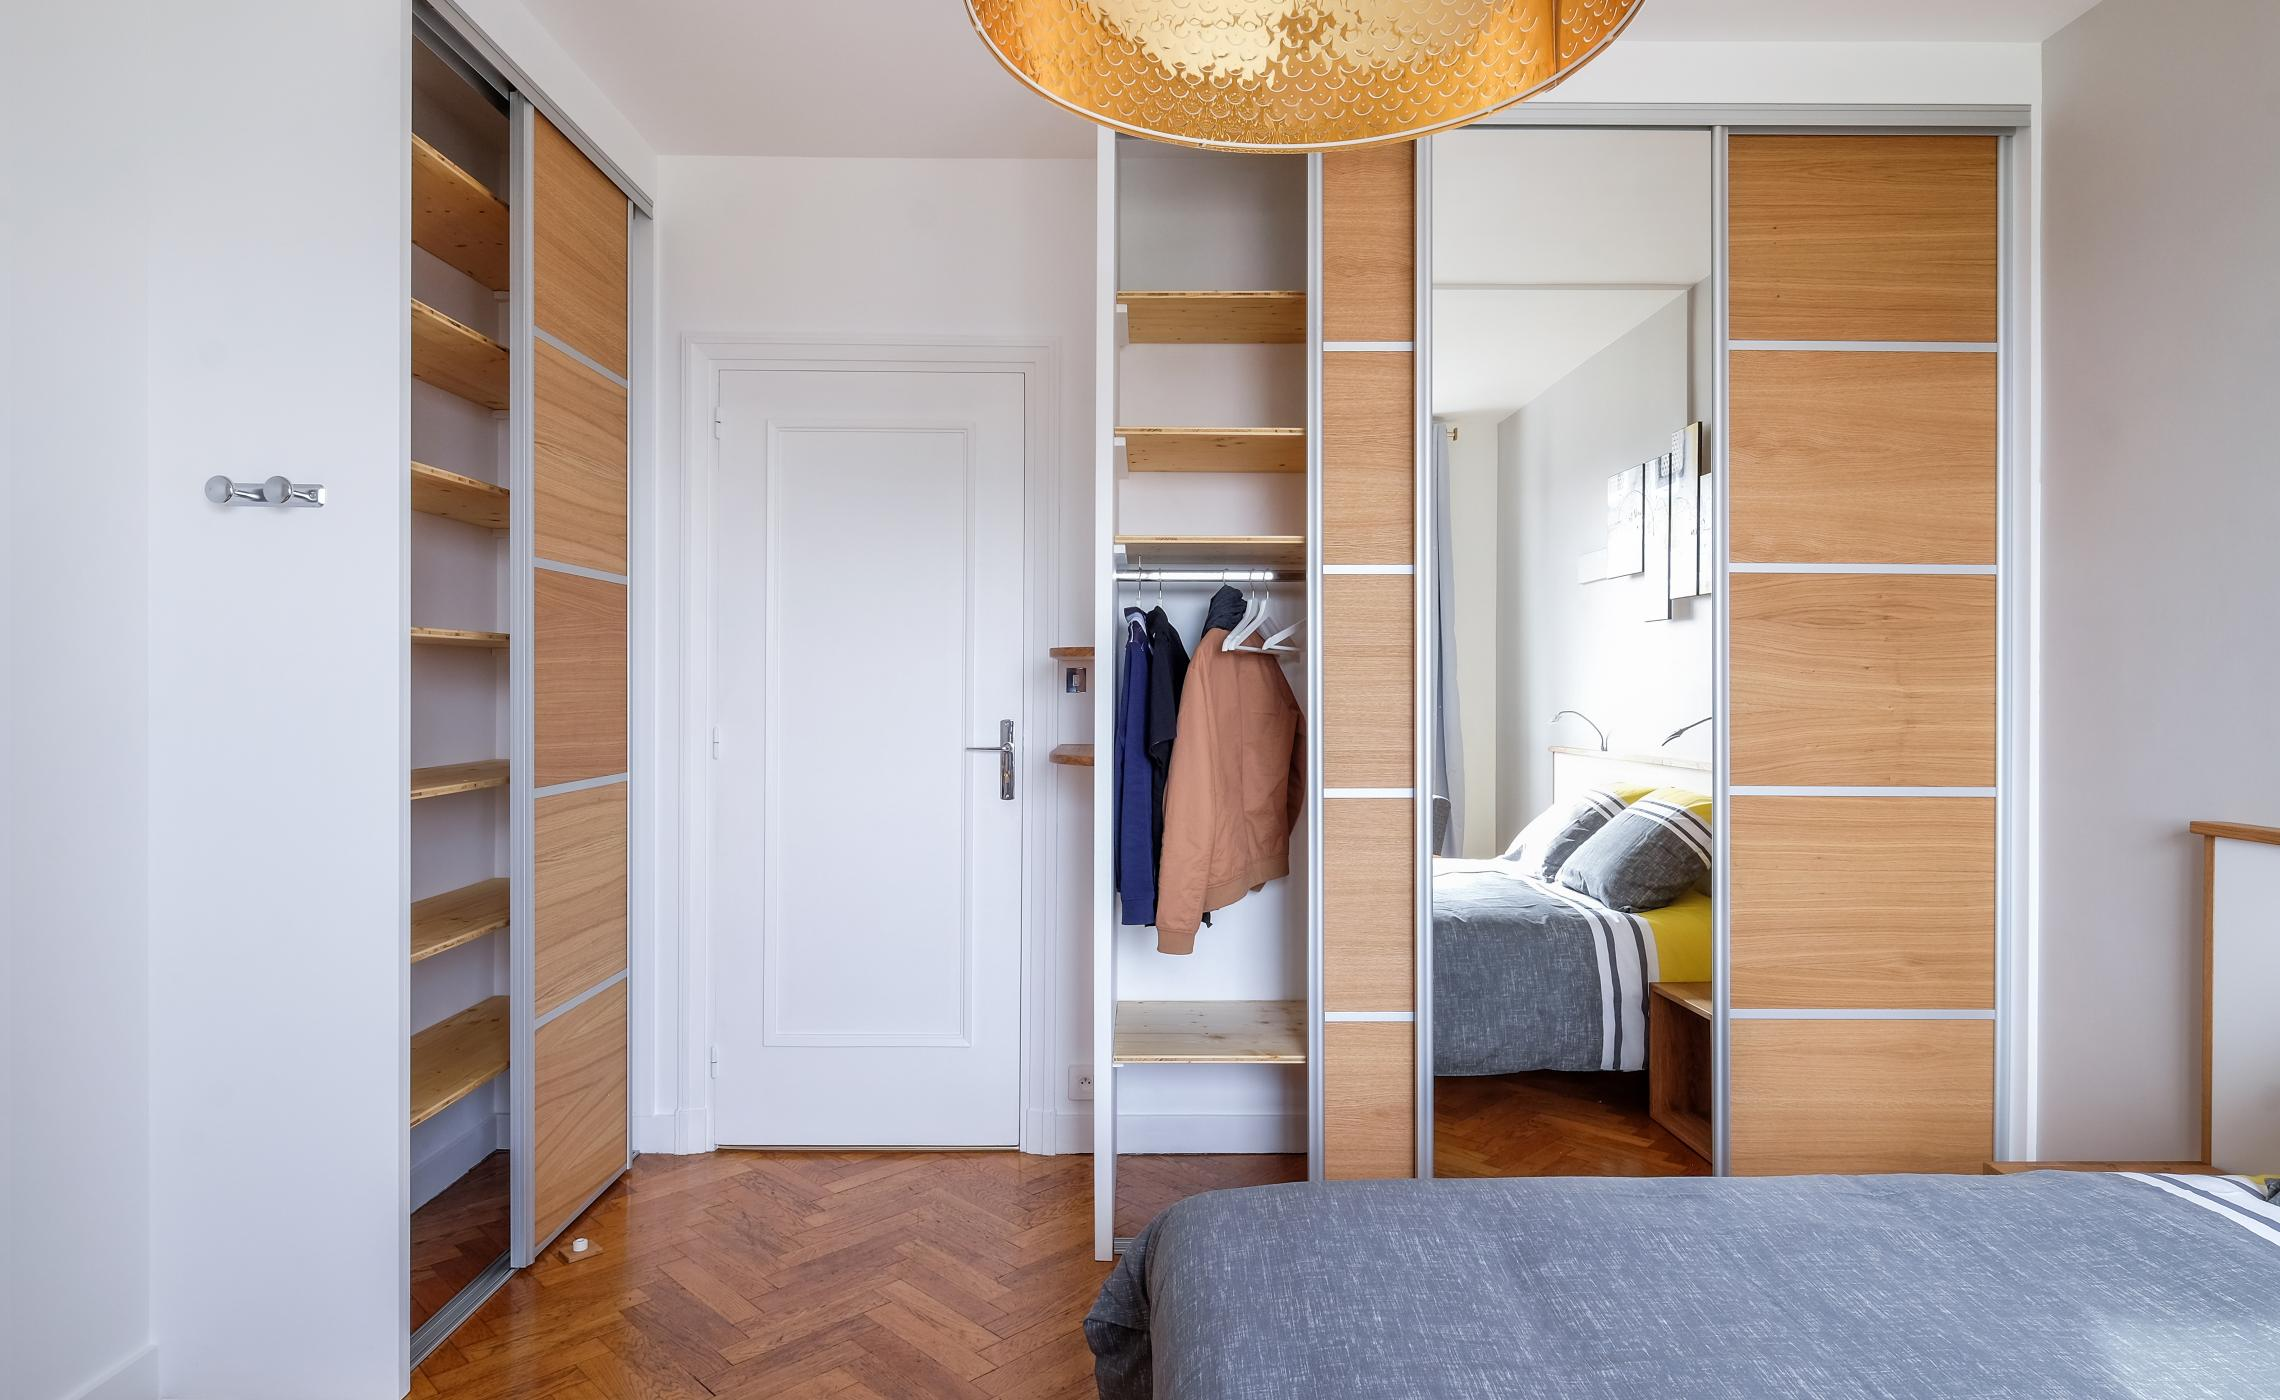 Amenagement interieur dressing bois